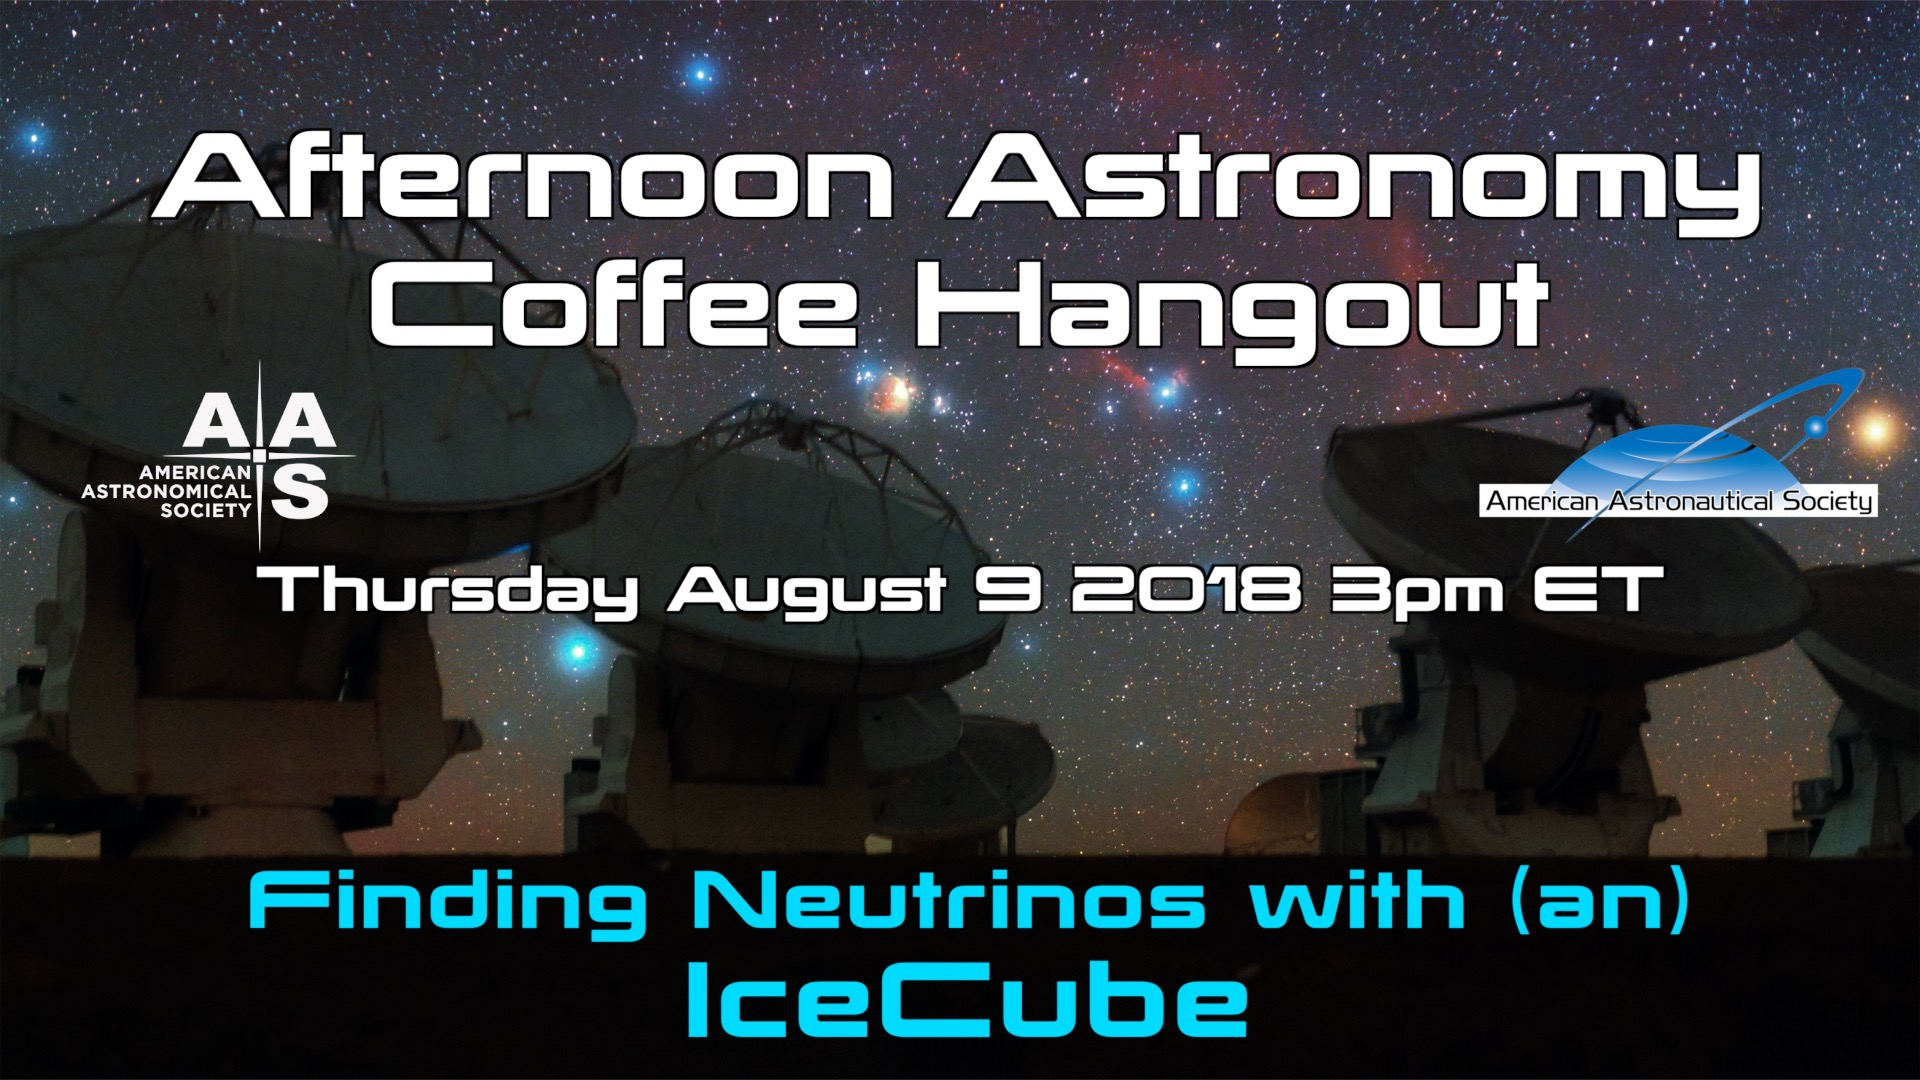 Afternoon Astronomy Coffee Hangout 9 August